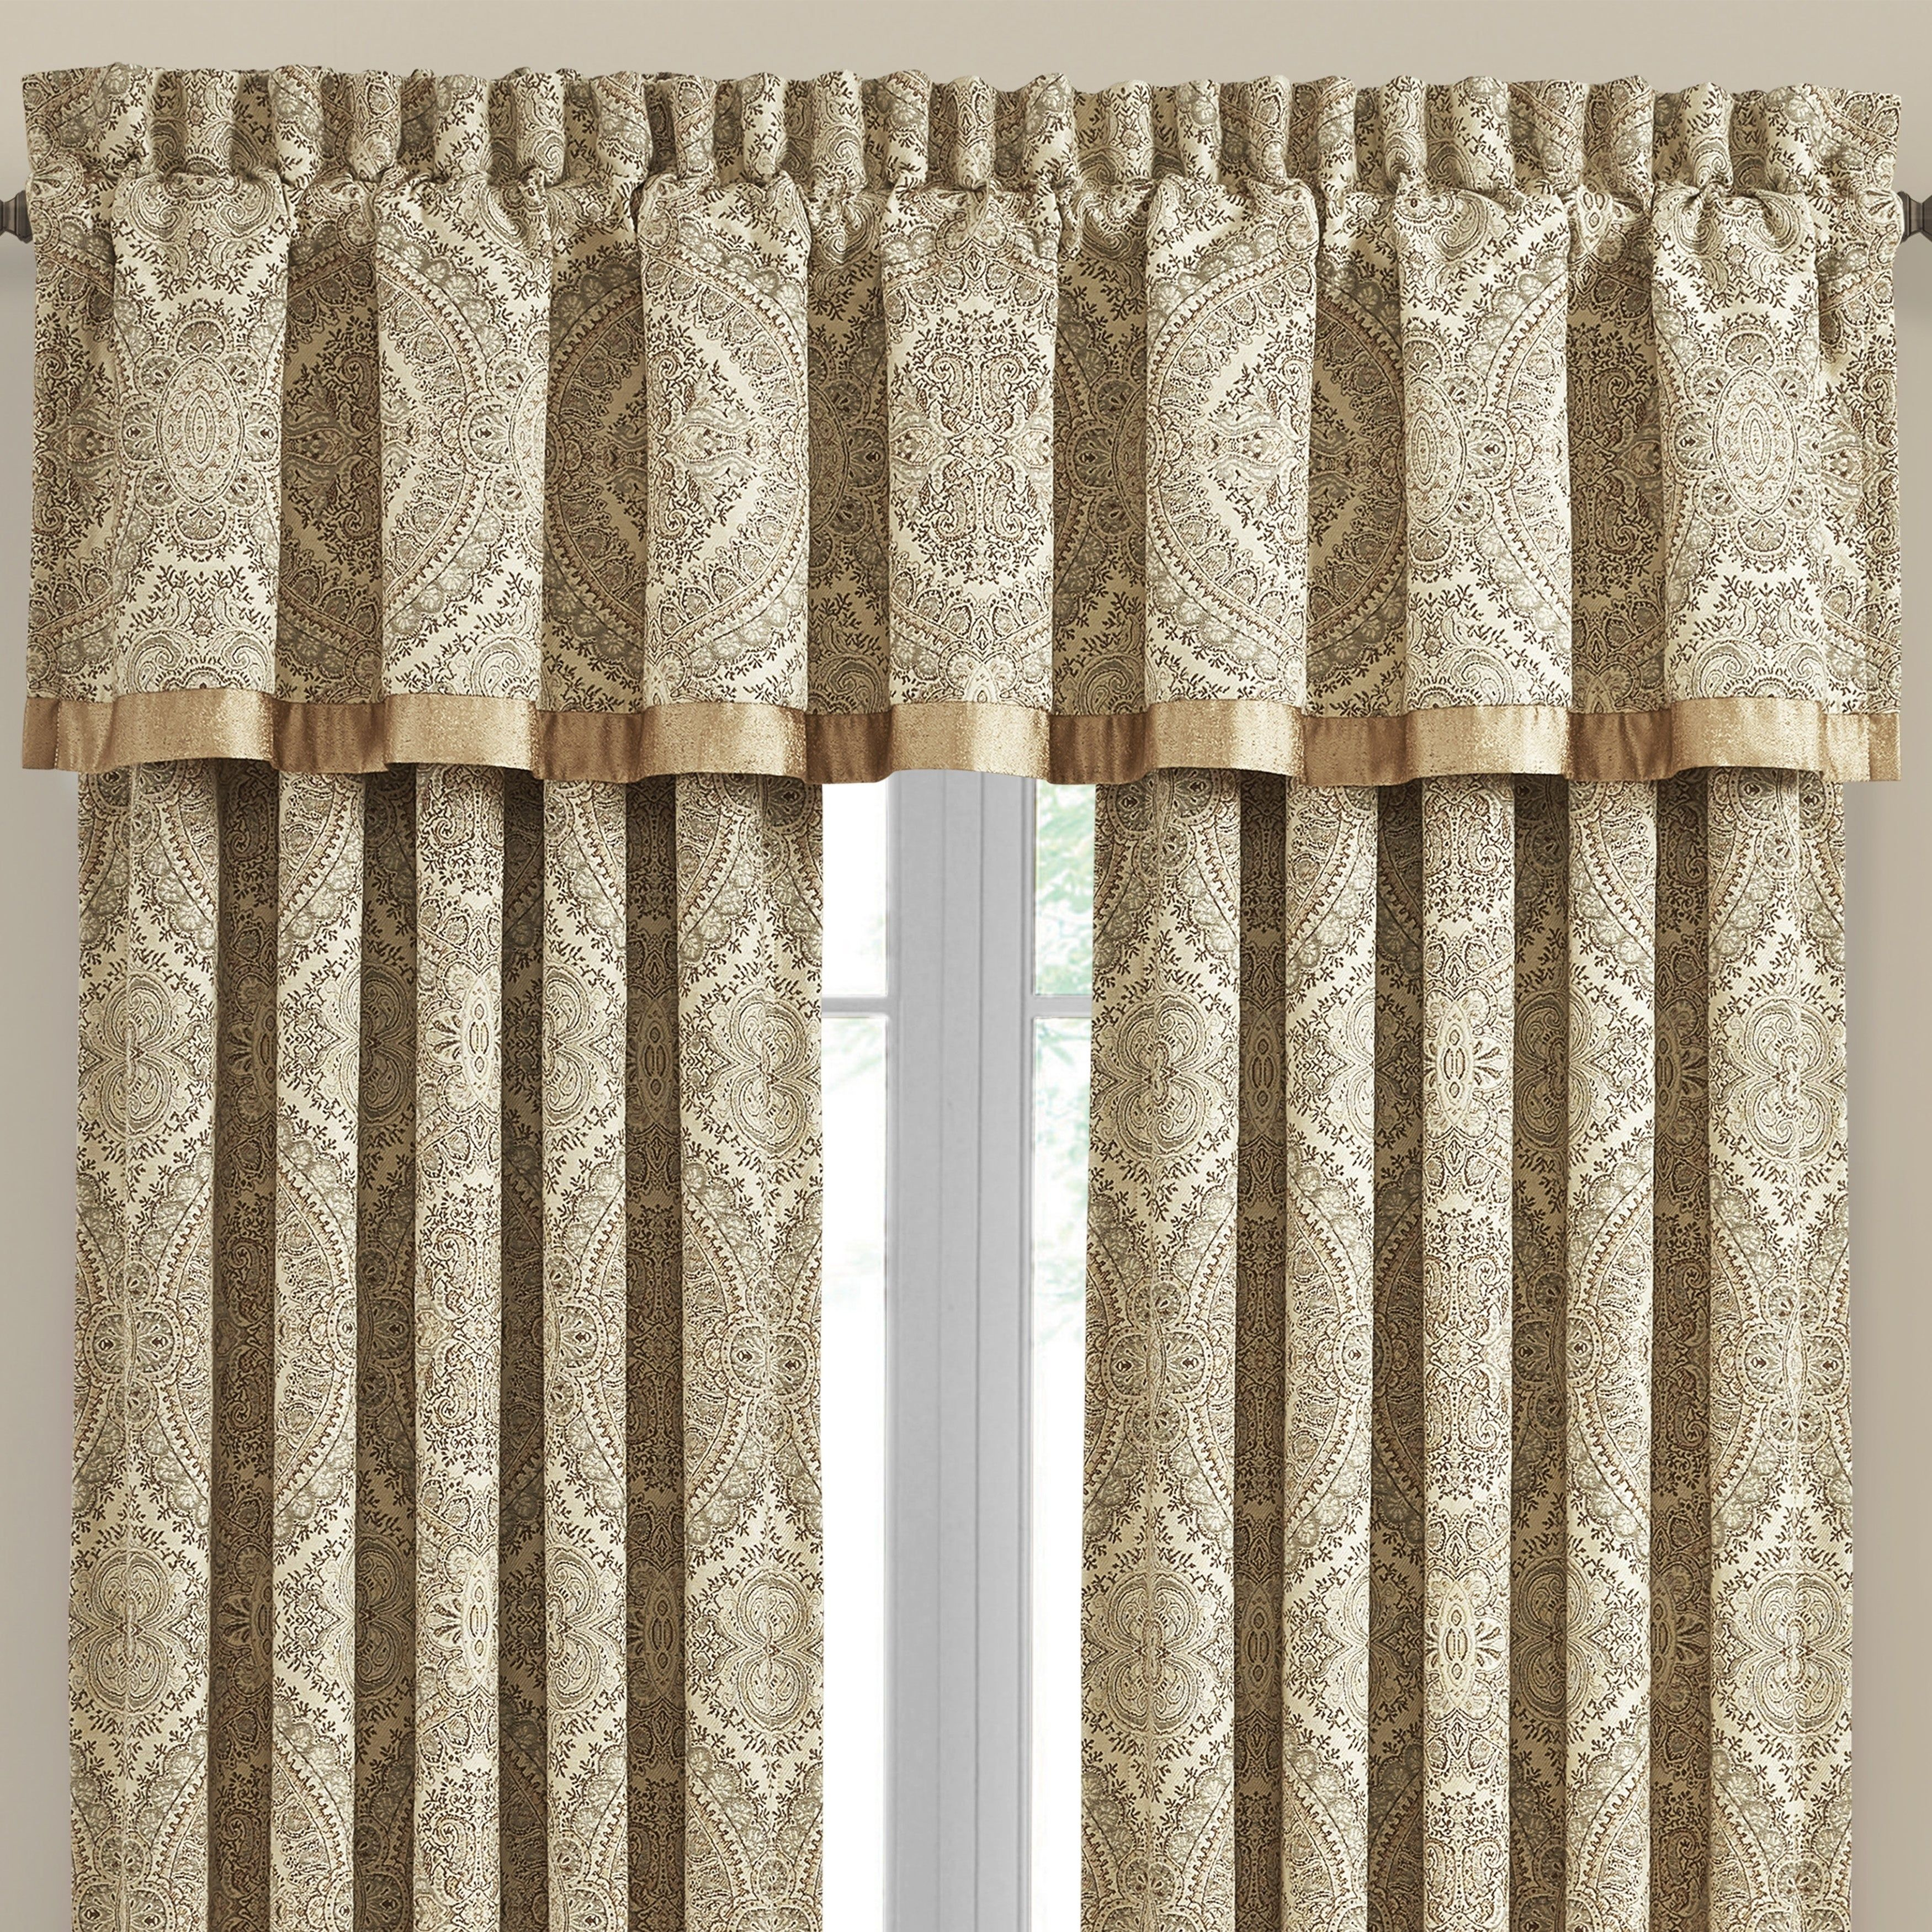 Overstock Com Online Shopping Bedding Furniture Electronics Jewelry Clothing More Valance J Queen New York Window Valance